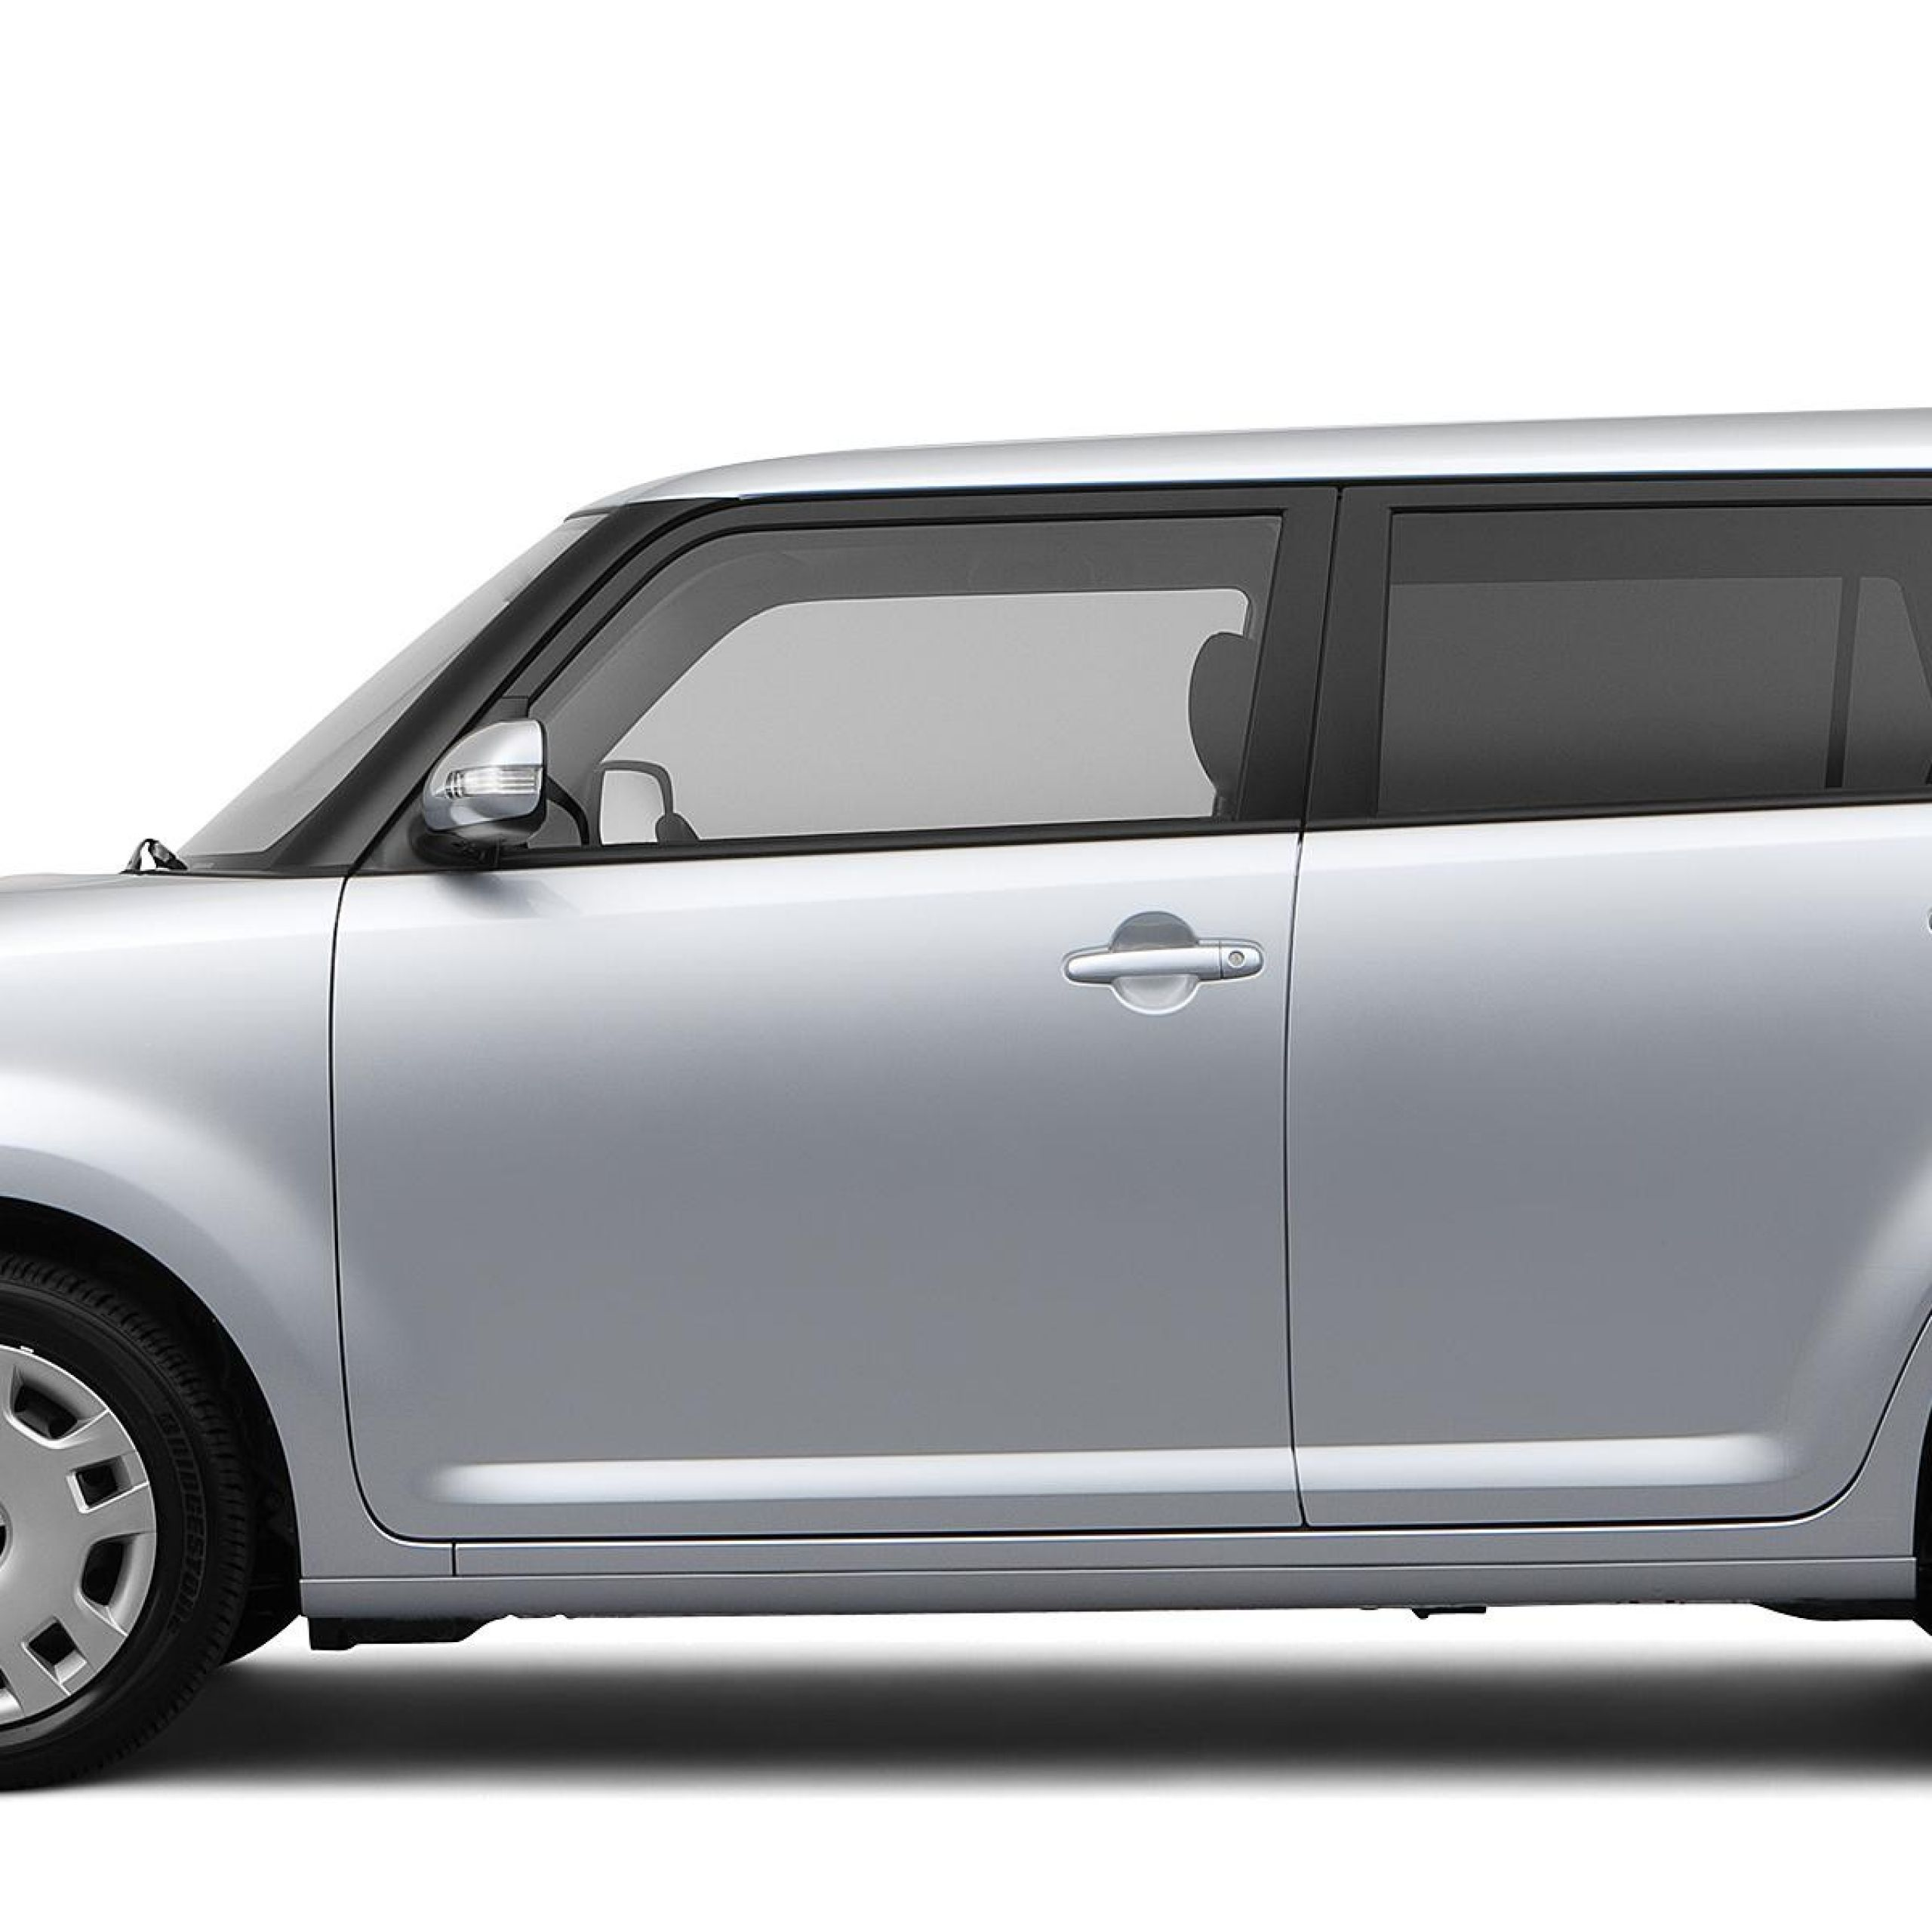 2012 scion xb base 4dr wagon 4a classic silver metallic posite large